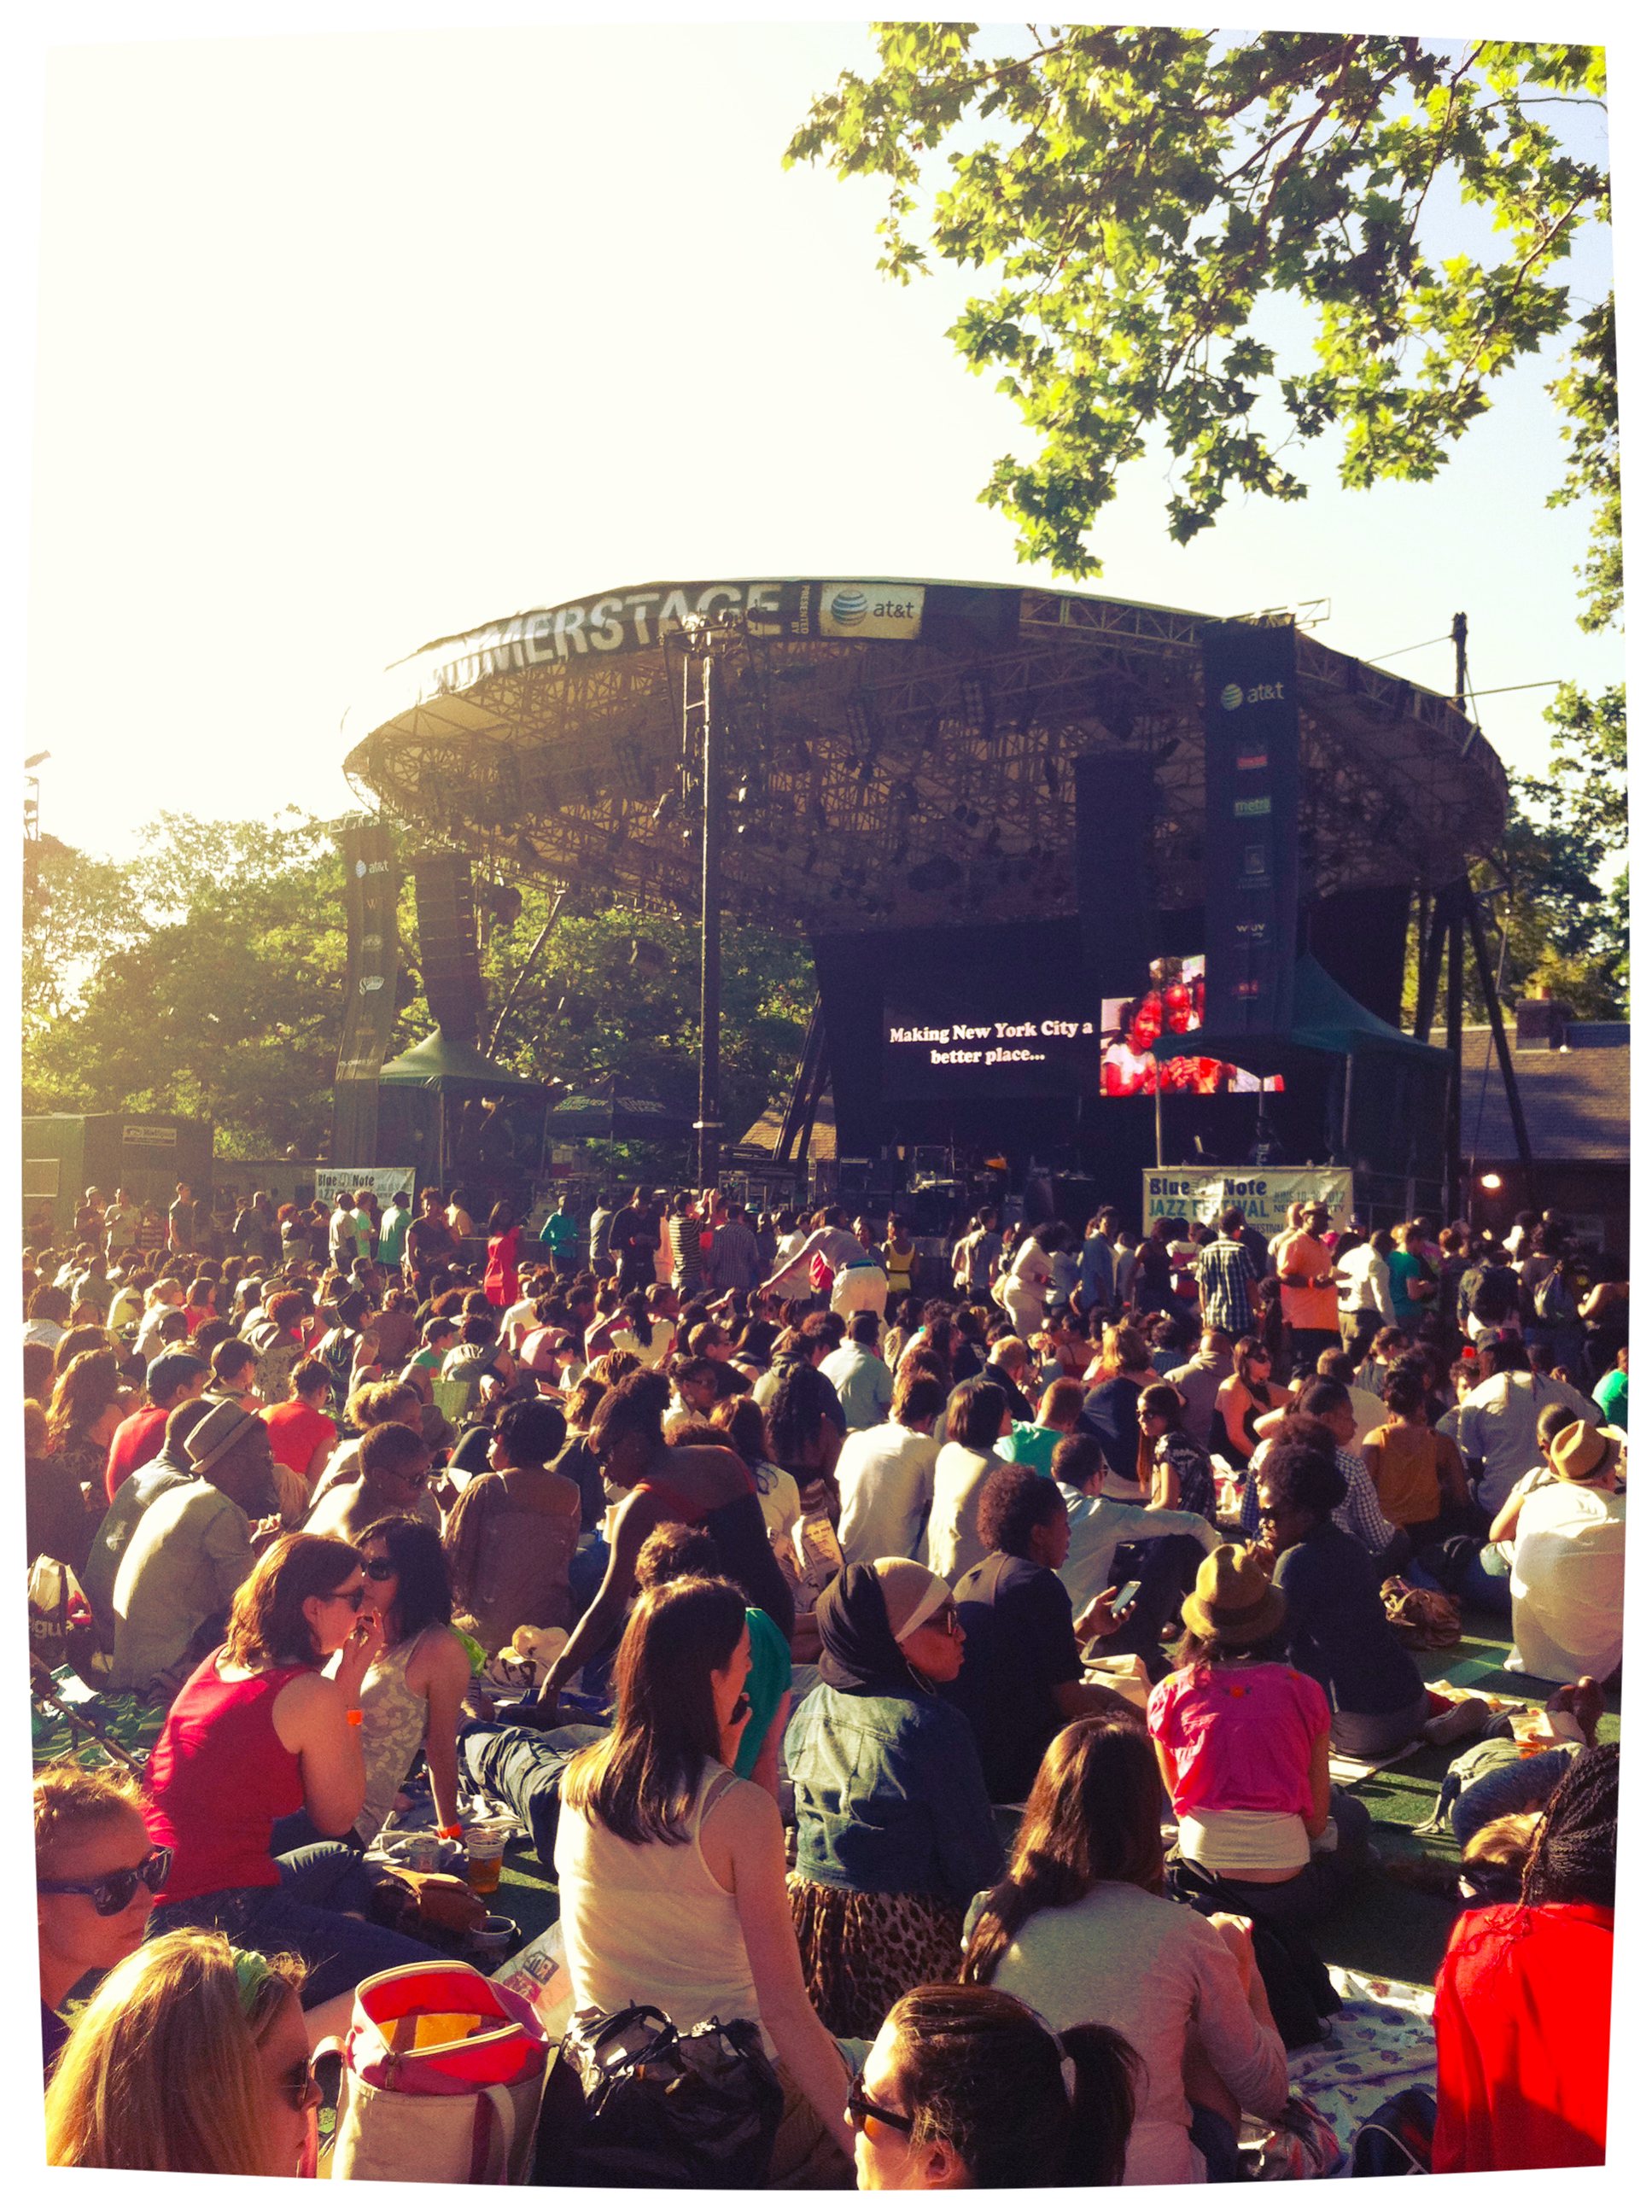 Central Park SummerStage, an annual experience